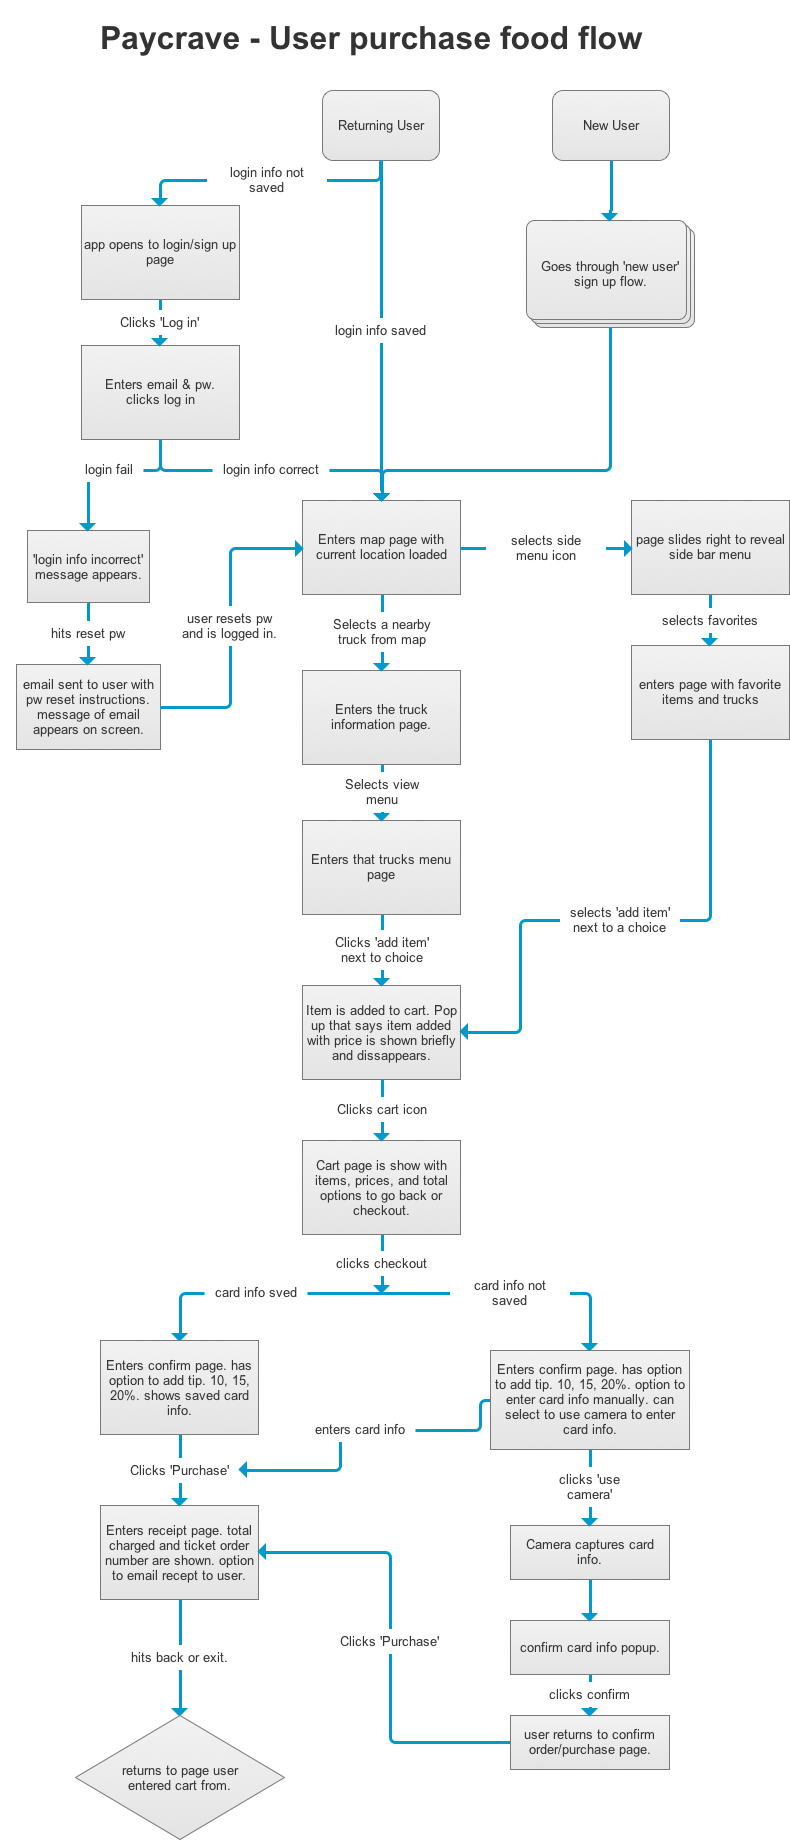 A userflow I created in Axure for users ordering and purchasing food.